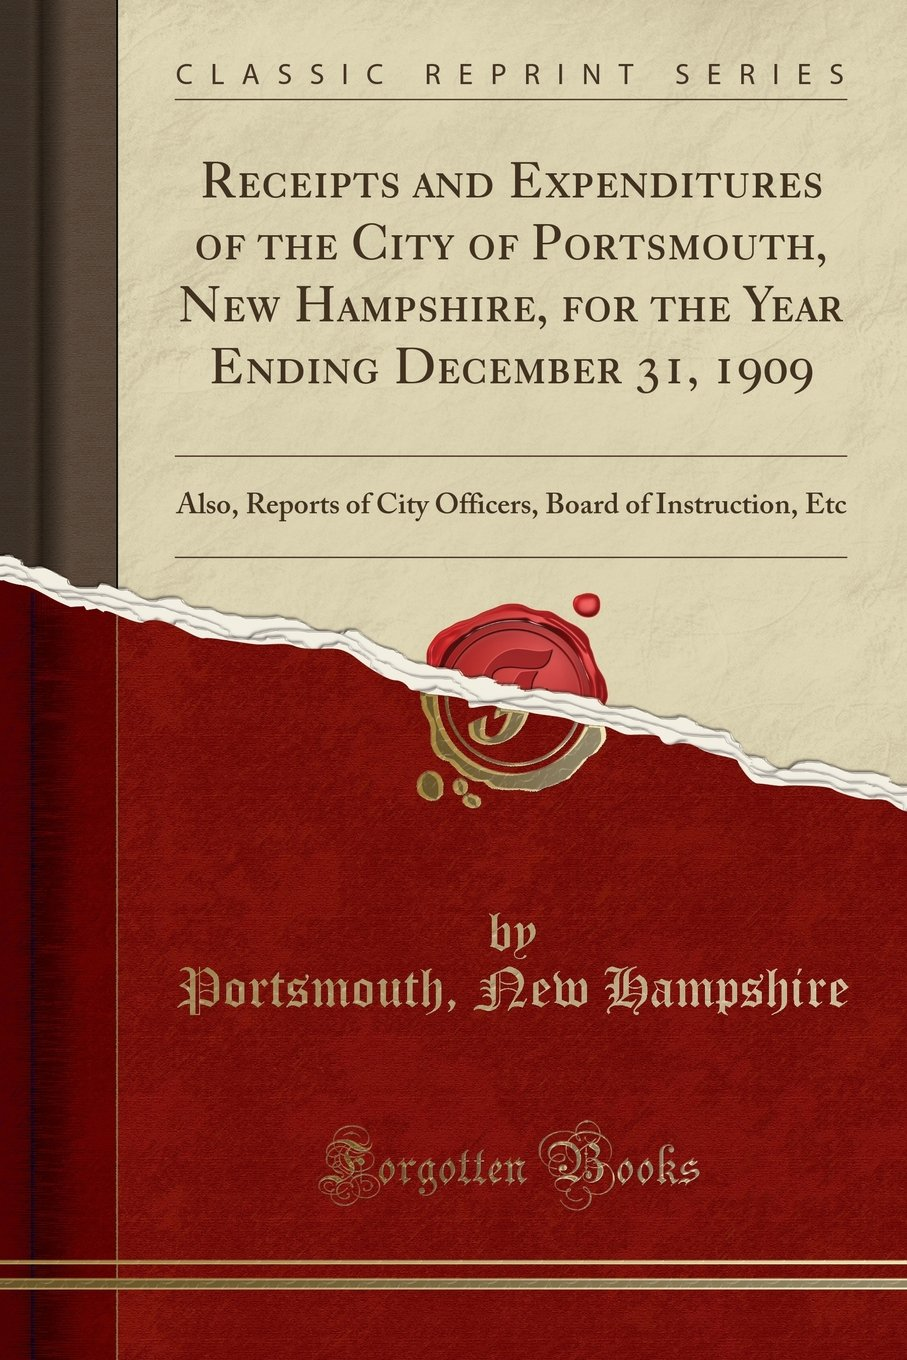 Read Online Receipts and Expenditures of the City of Portsmouth, New Hampshire, for the Year Ending December 31, 1909: Also, Reports of City Officers, Board of Instruction, Etc (Classic Reprint) PDF